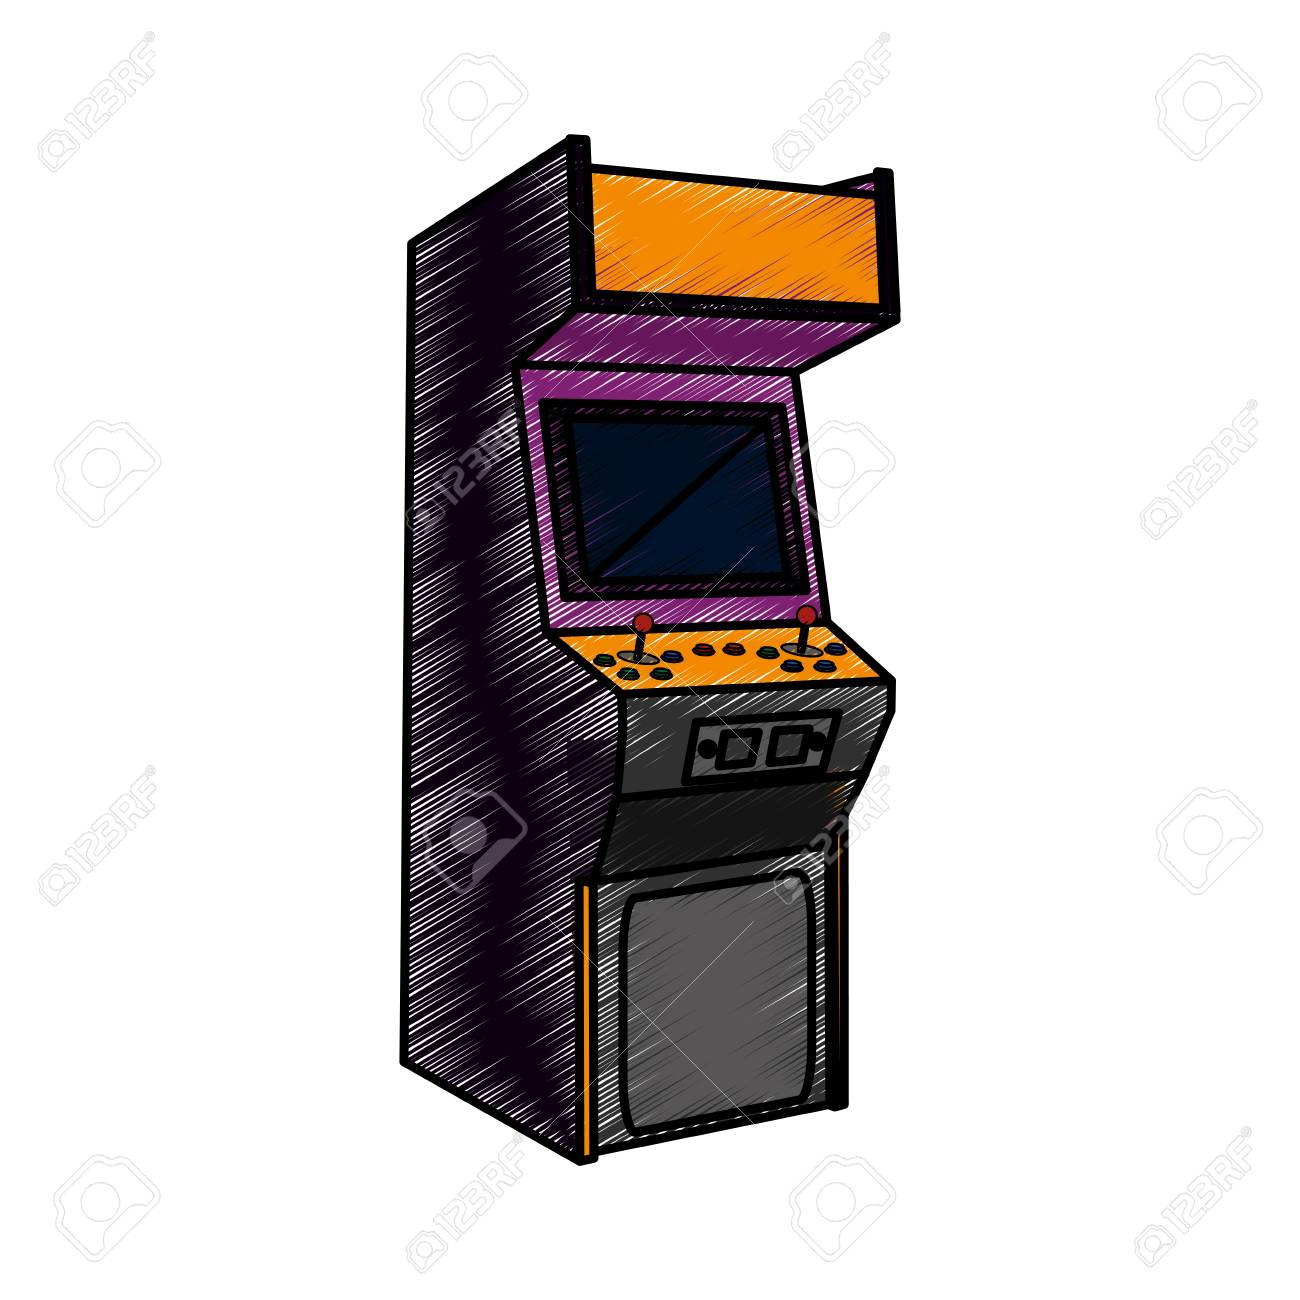 Arcade Machine Design Royalty Free Cliparts Vectors And Stock